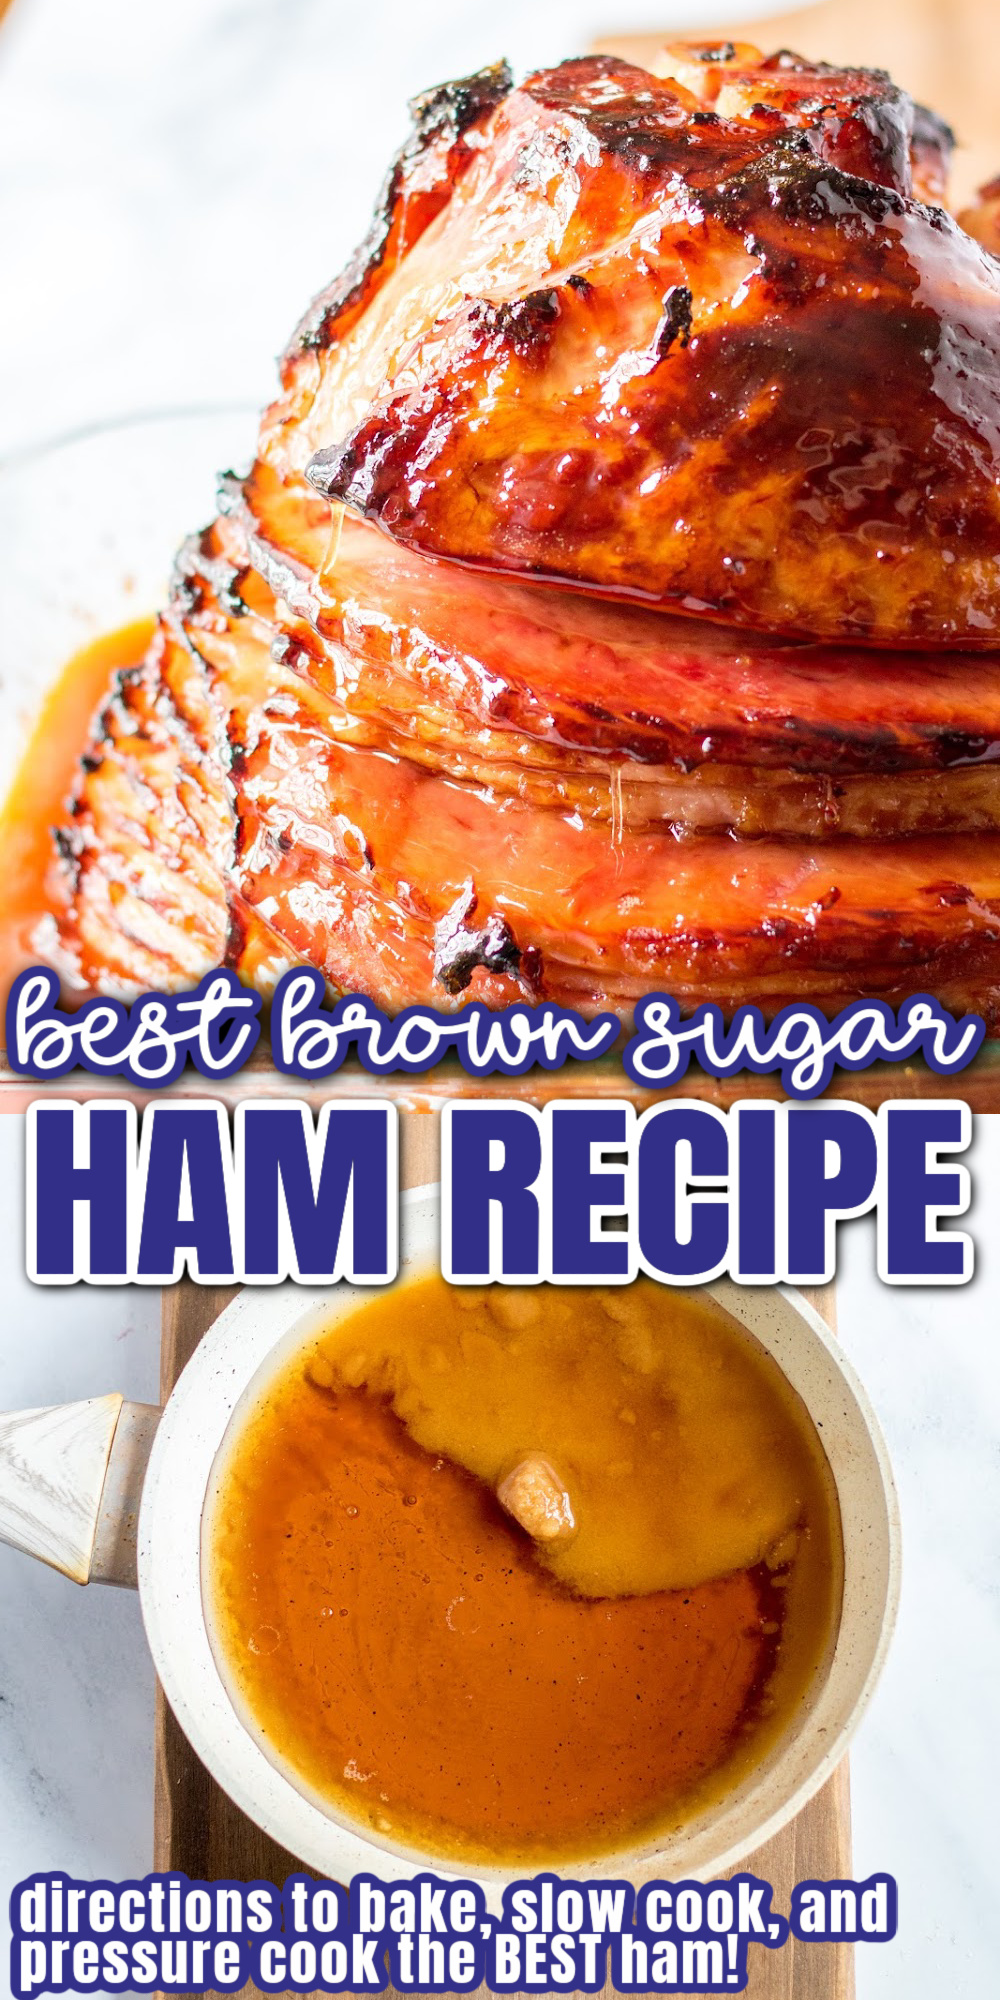 Easy instructions for slow cooker, Instant Pot and how to bake ham in the oven perfect for Easter Christmas or any special occasion. Brown sugar glaze recipe.